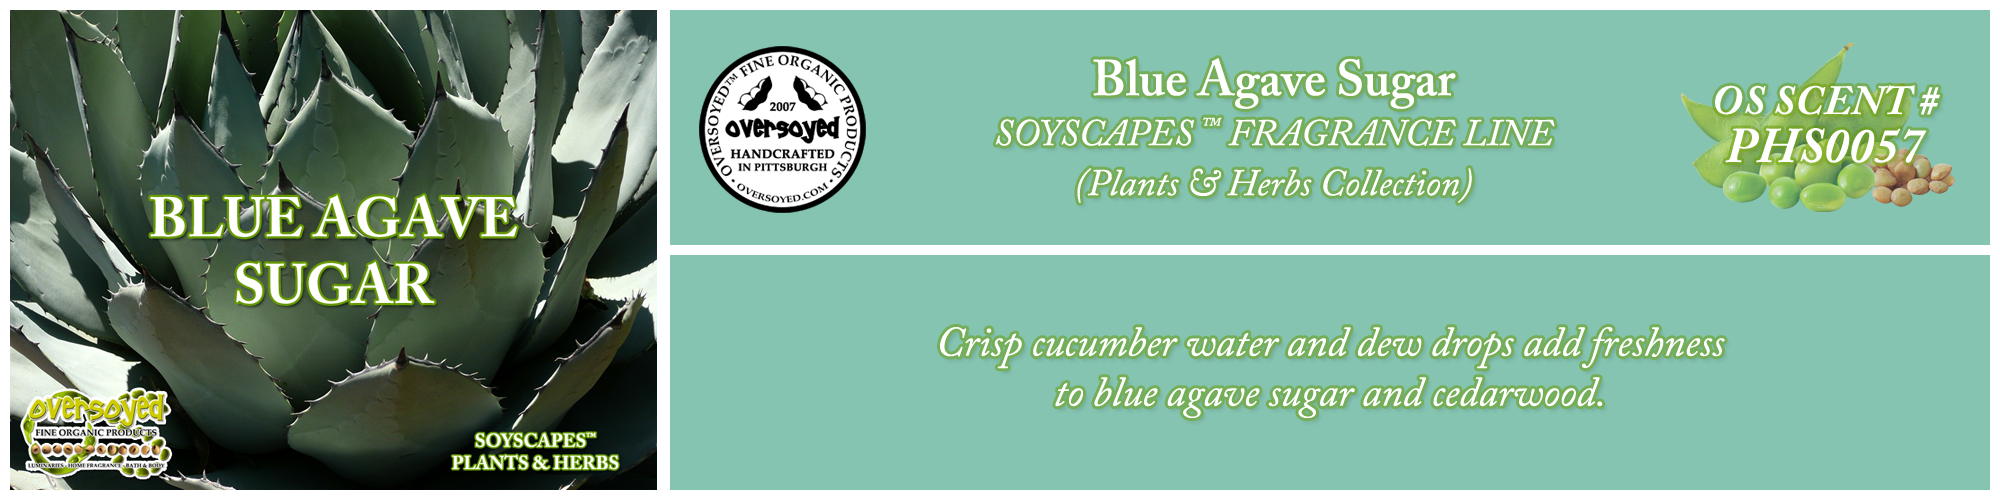 Blue Agave Sugar Handcrafted Products Collection